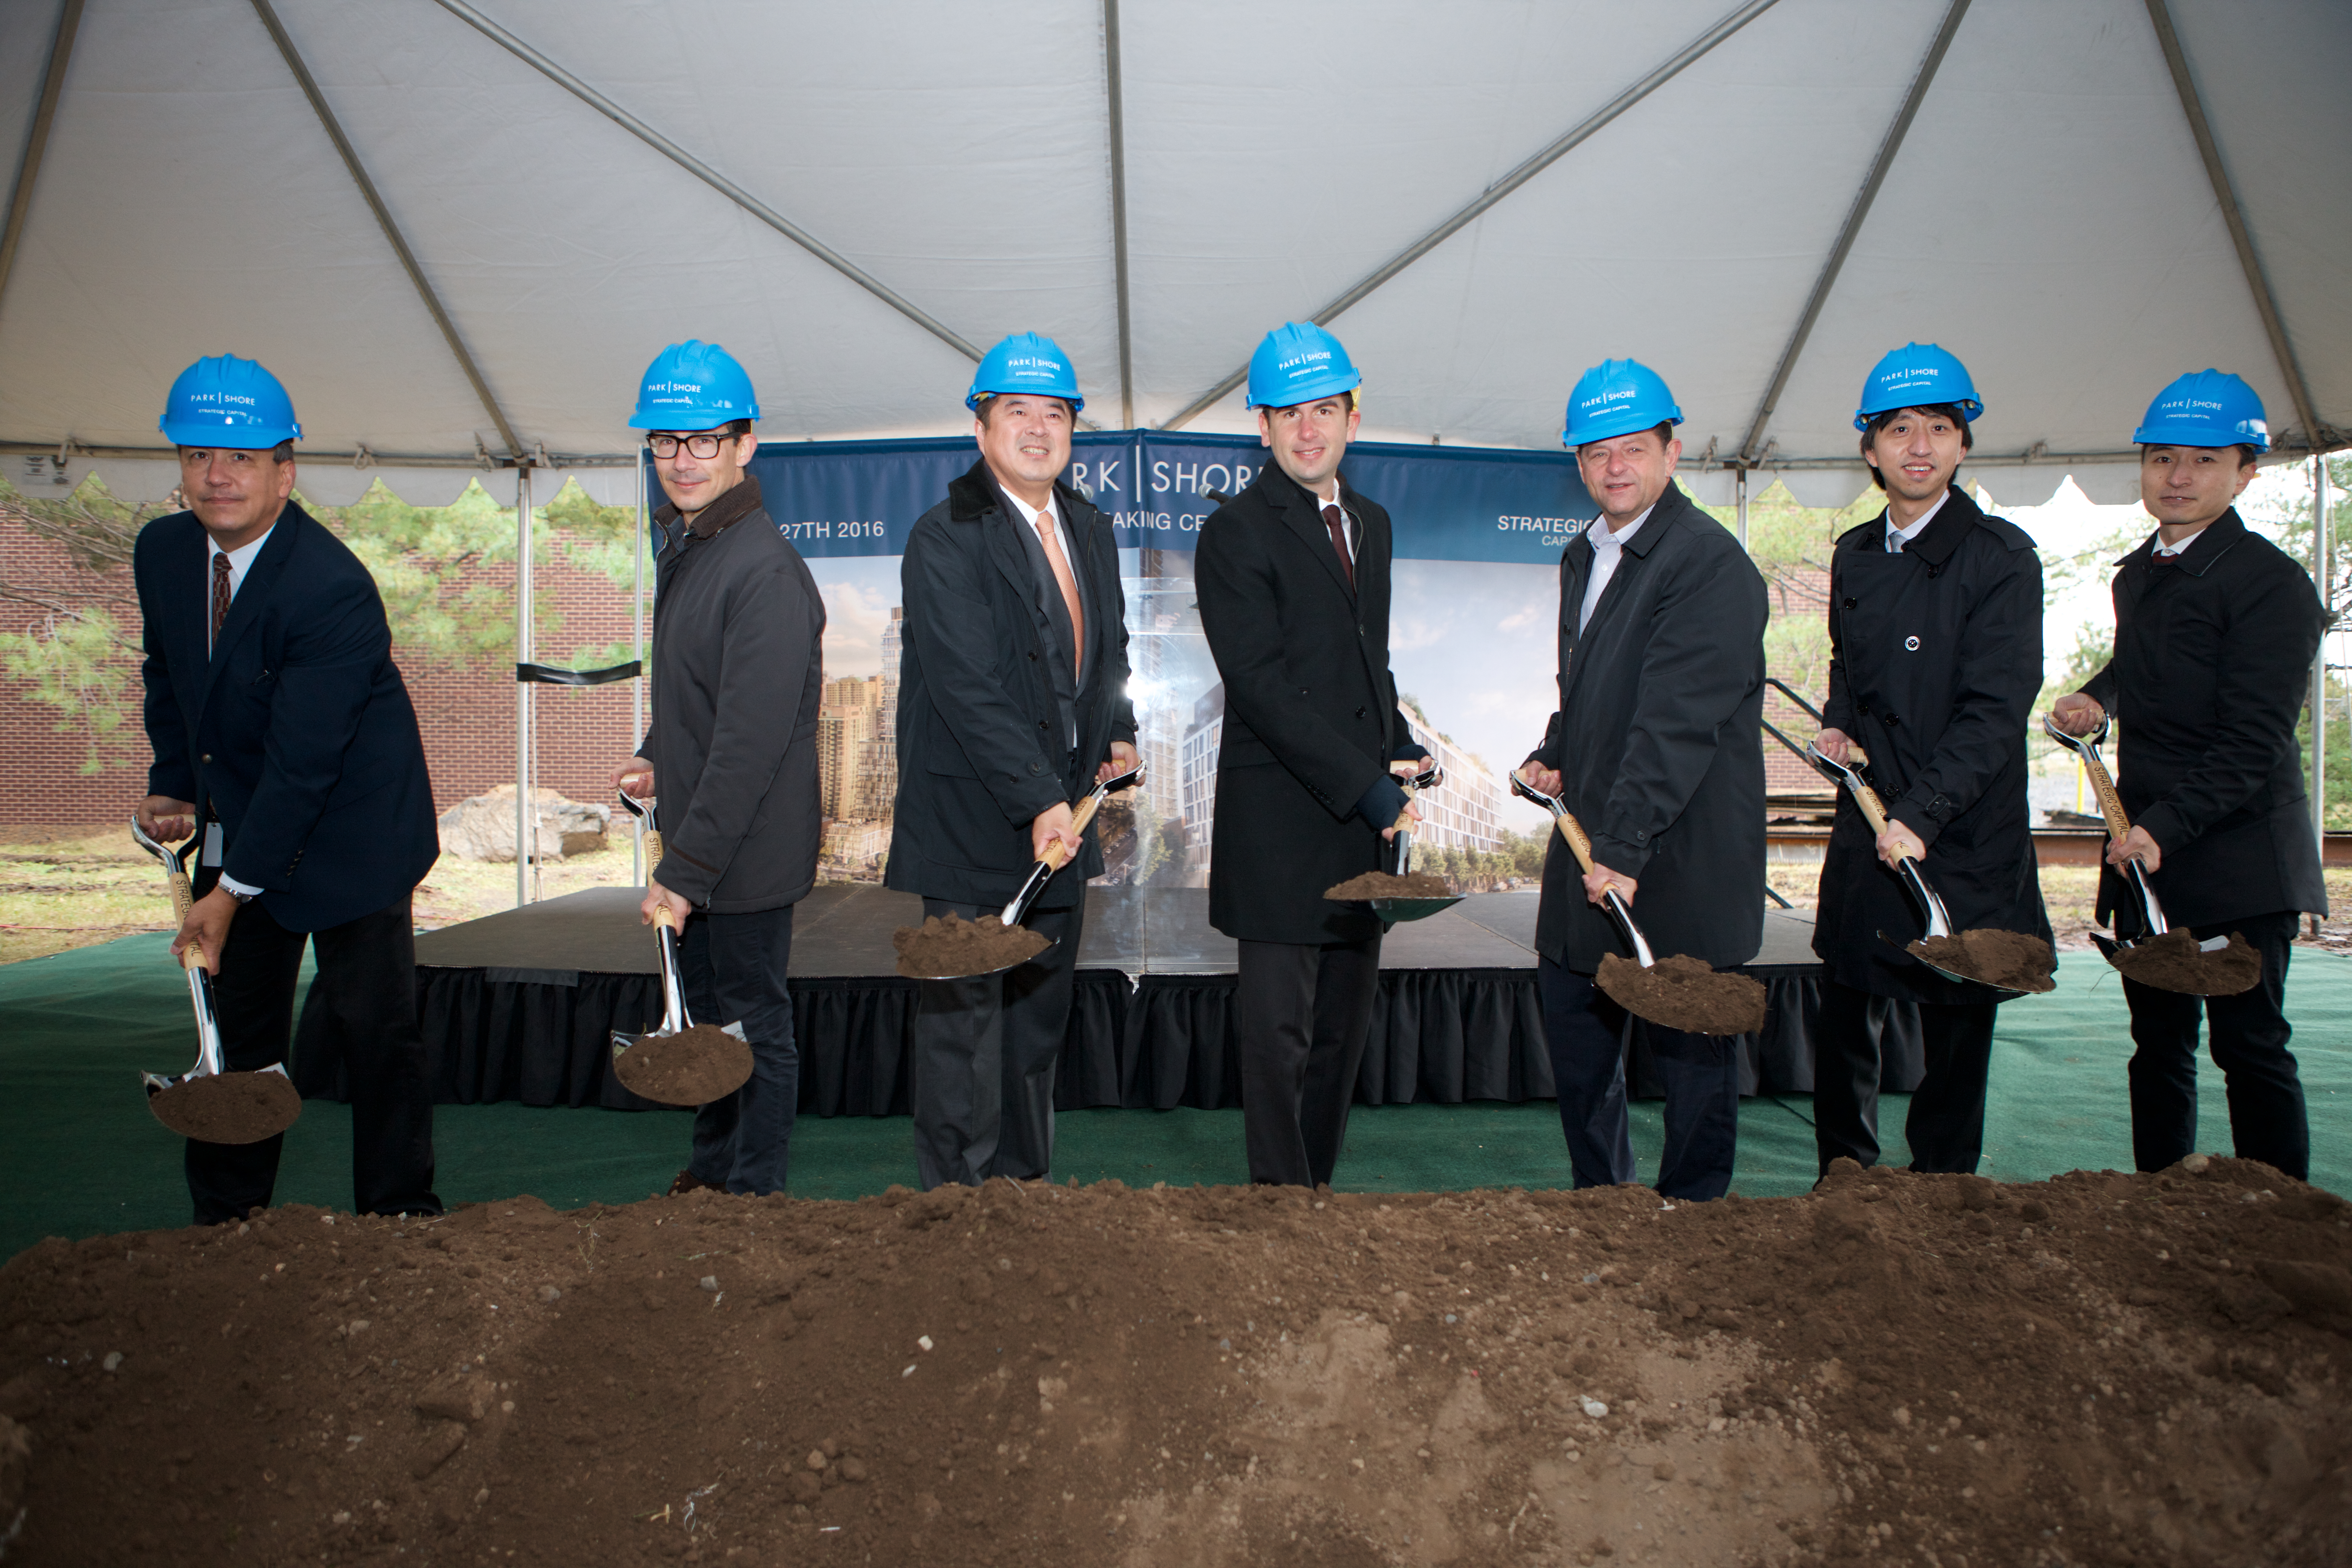 Strategic Capital joined local officials for a groundbreaking ceremony for Park and Shore in Jersey City.